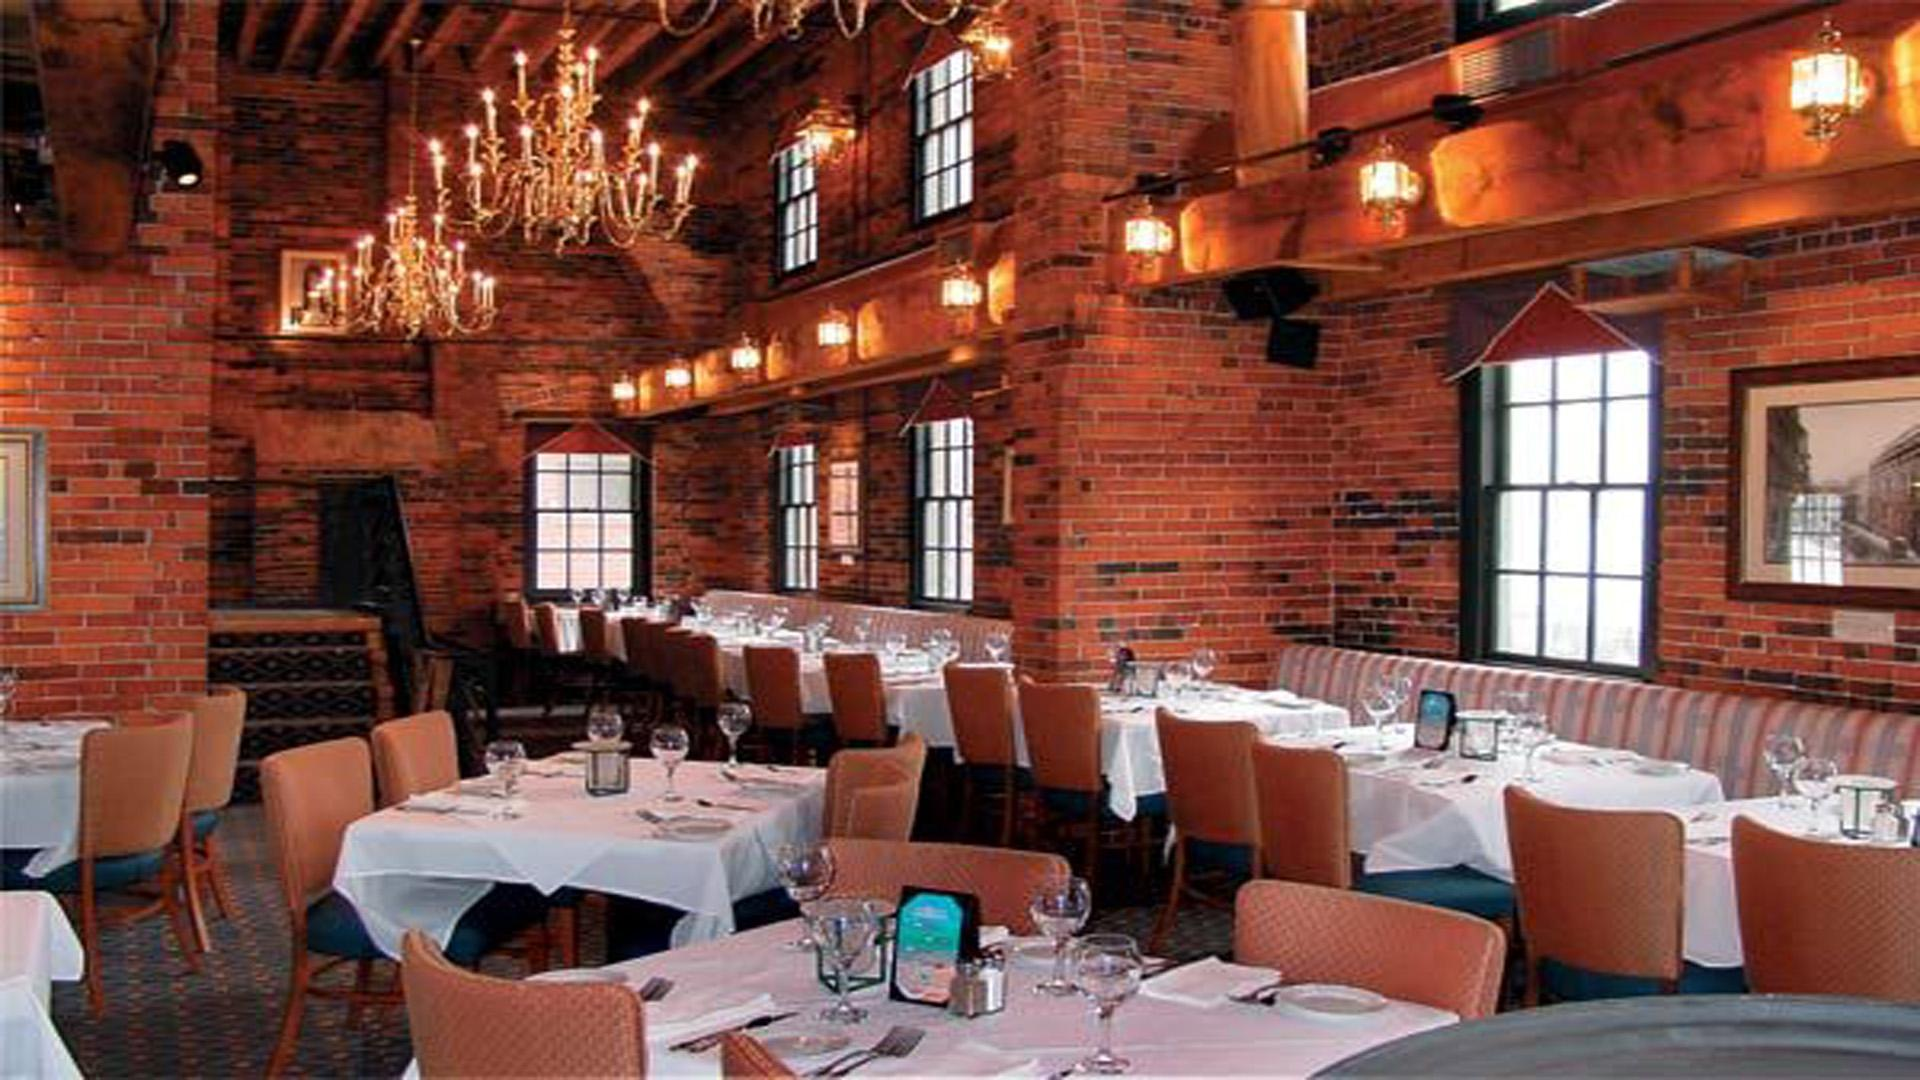 Rent chart house boston corporate events wedding locations